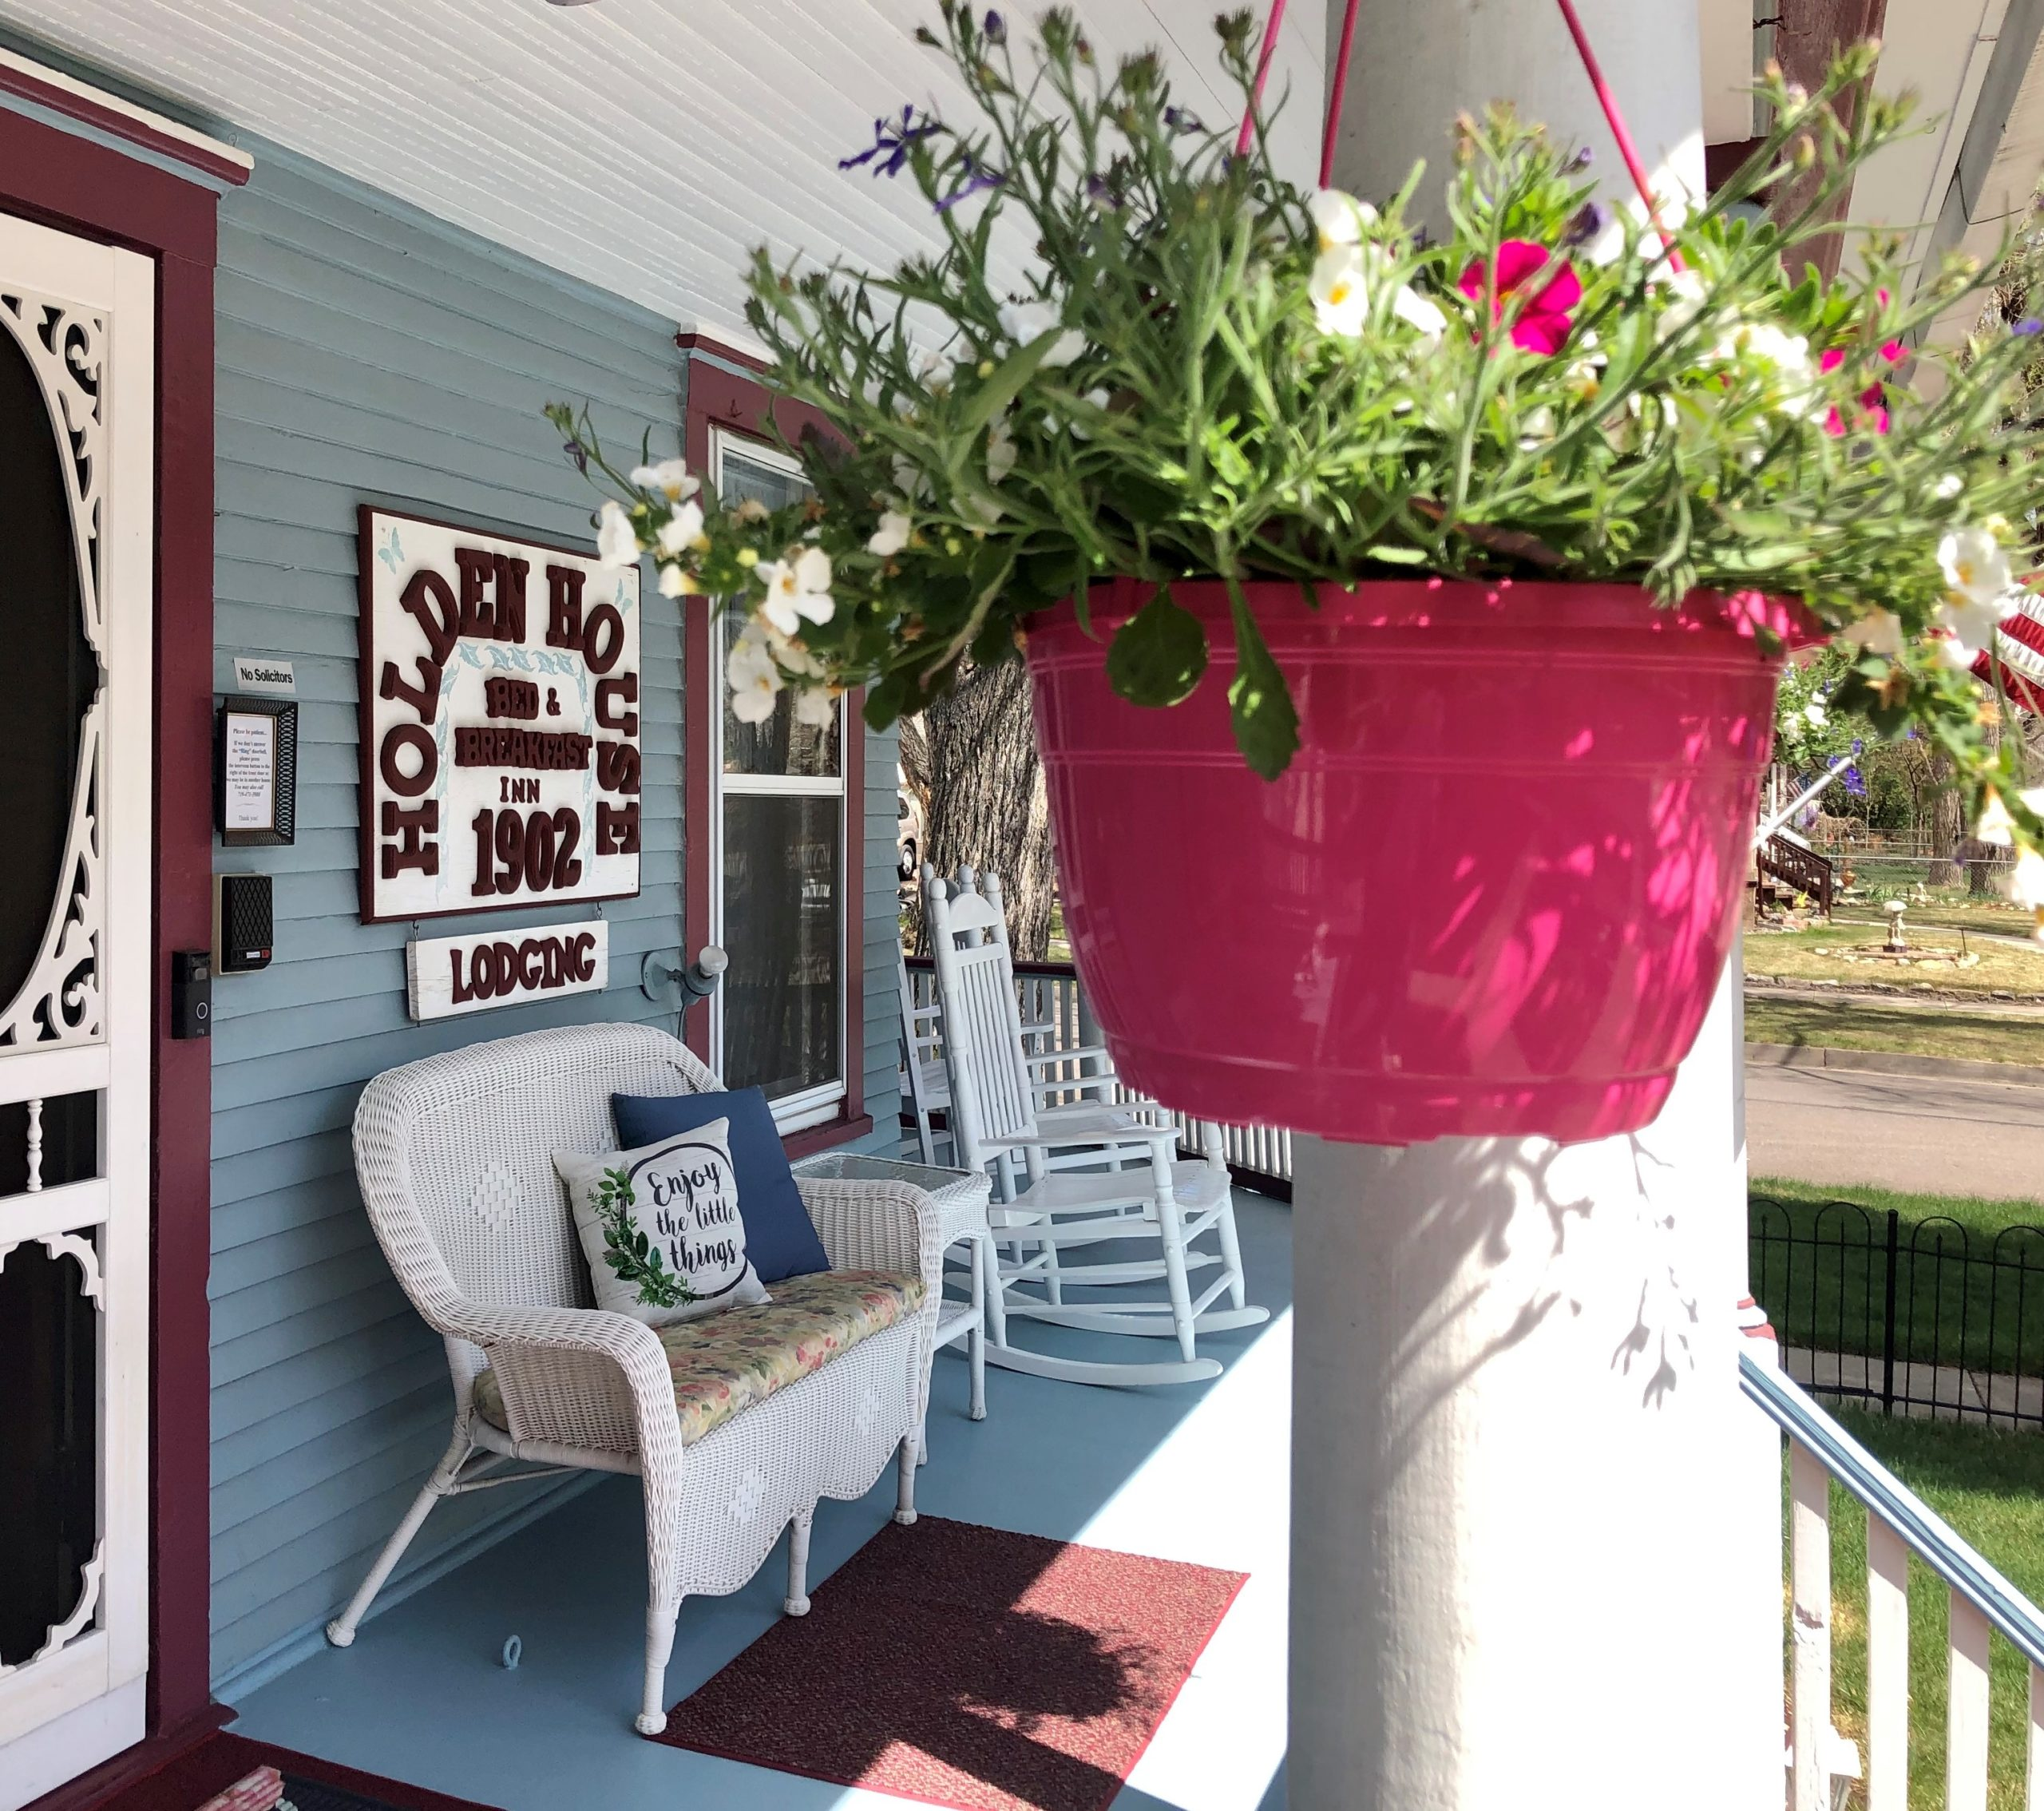 Holden House includes a welcoming front porch